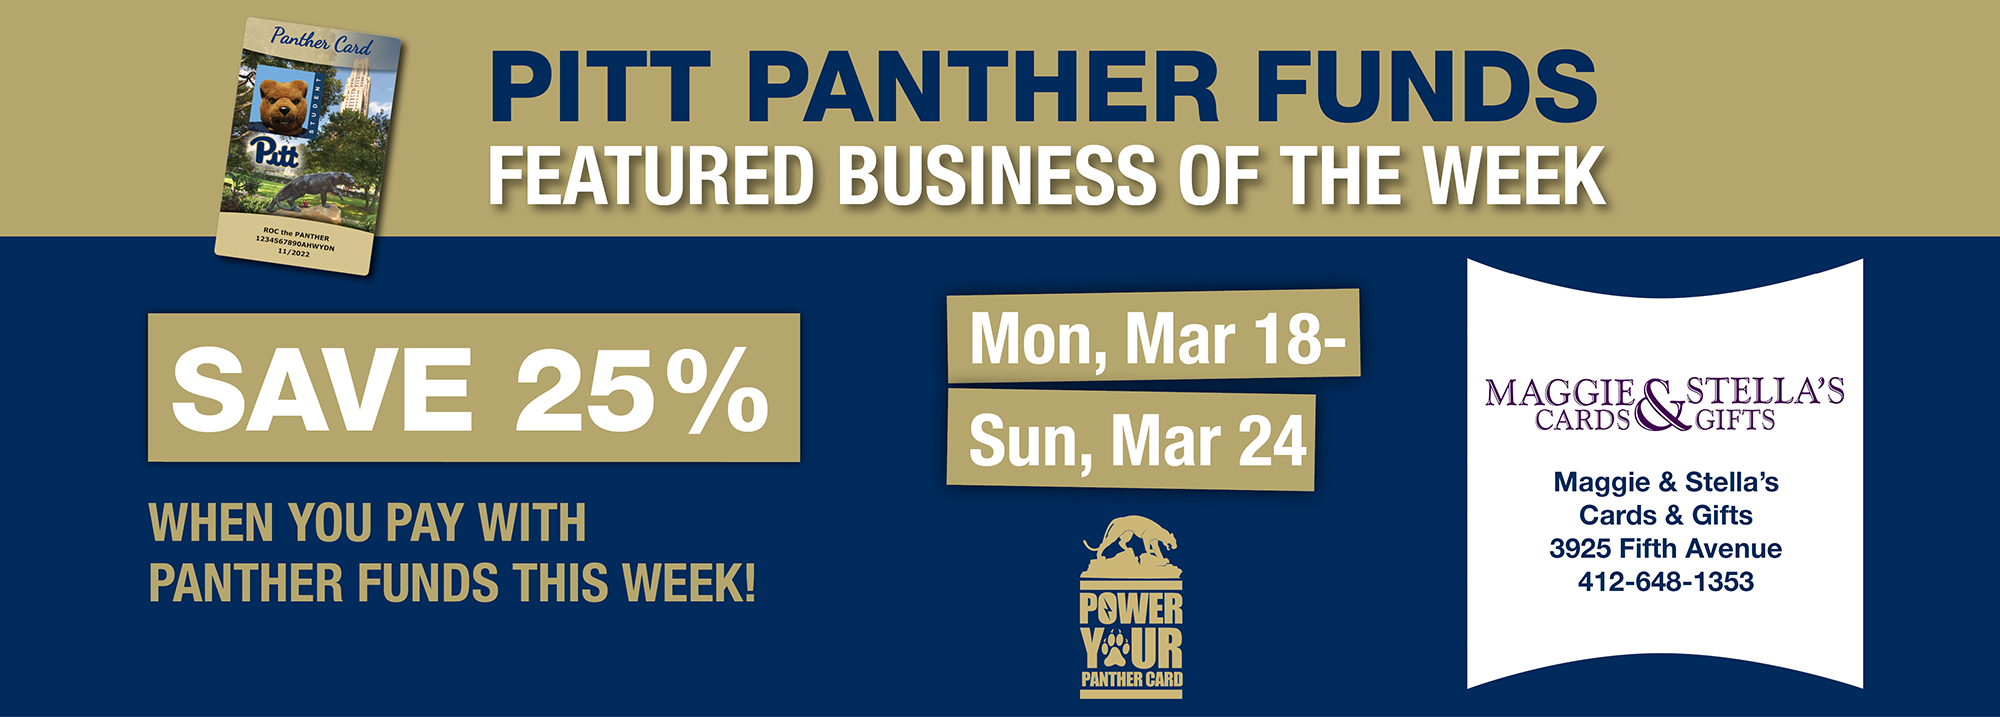 Pitt - Featured business of the week